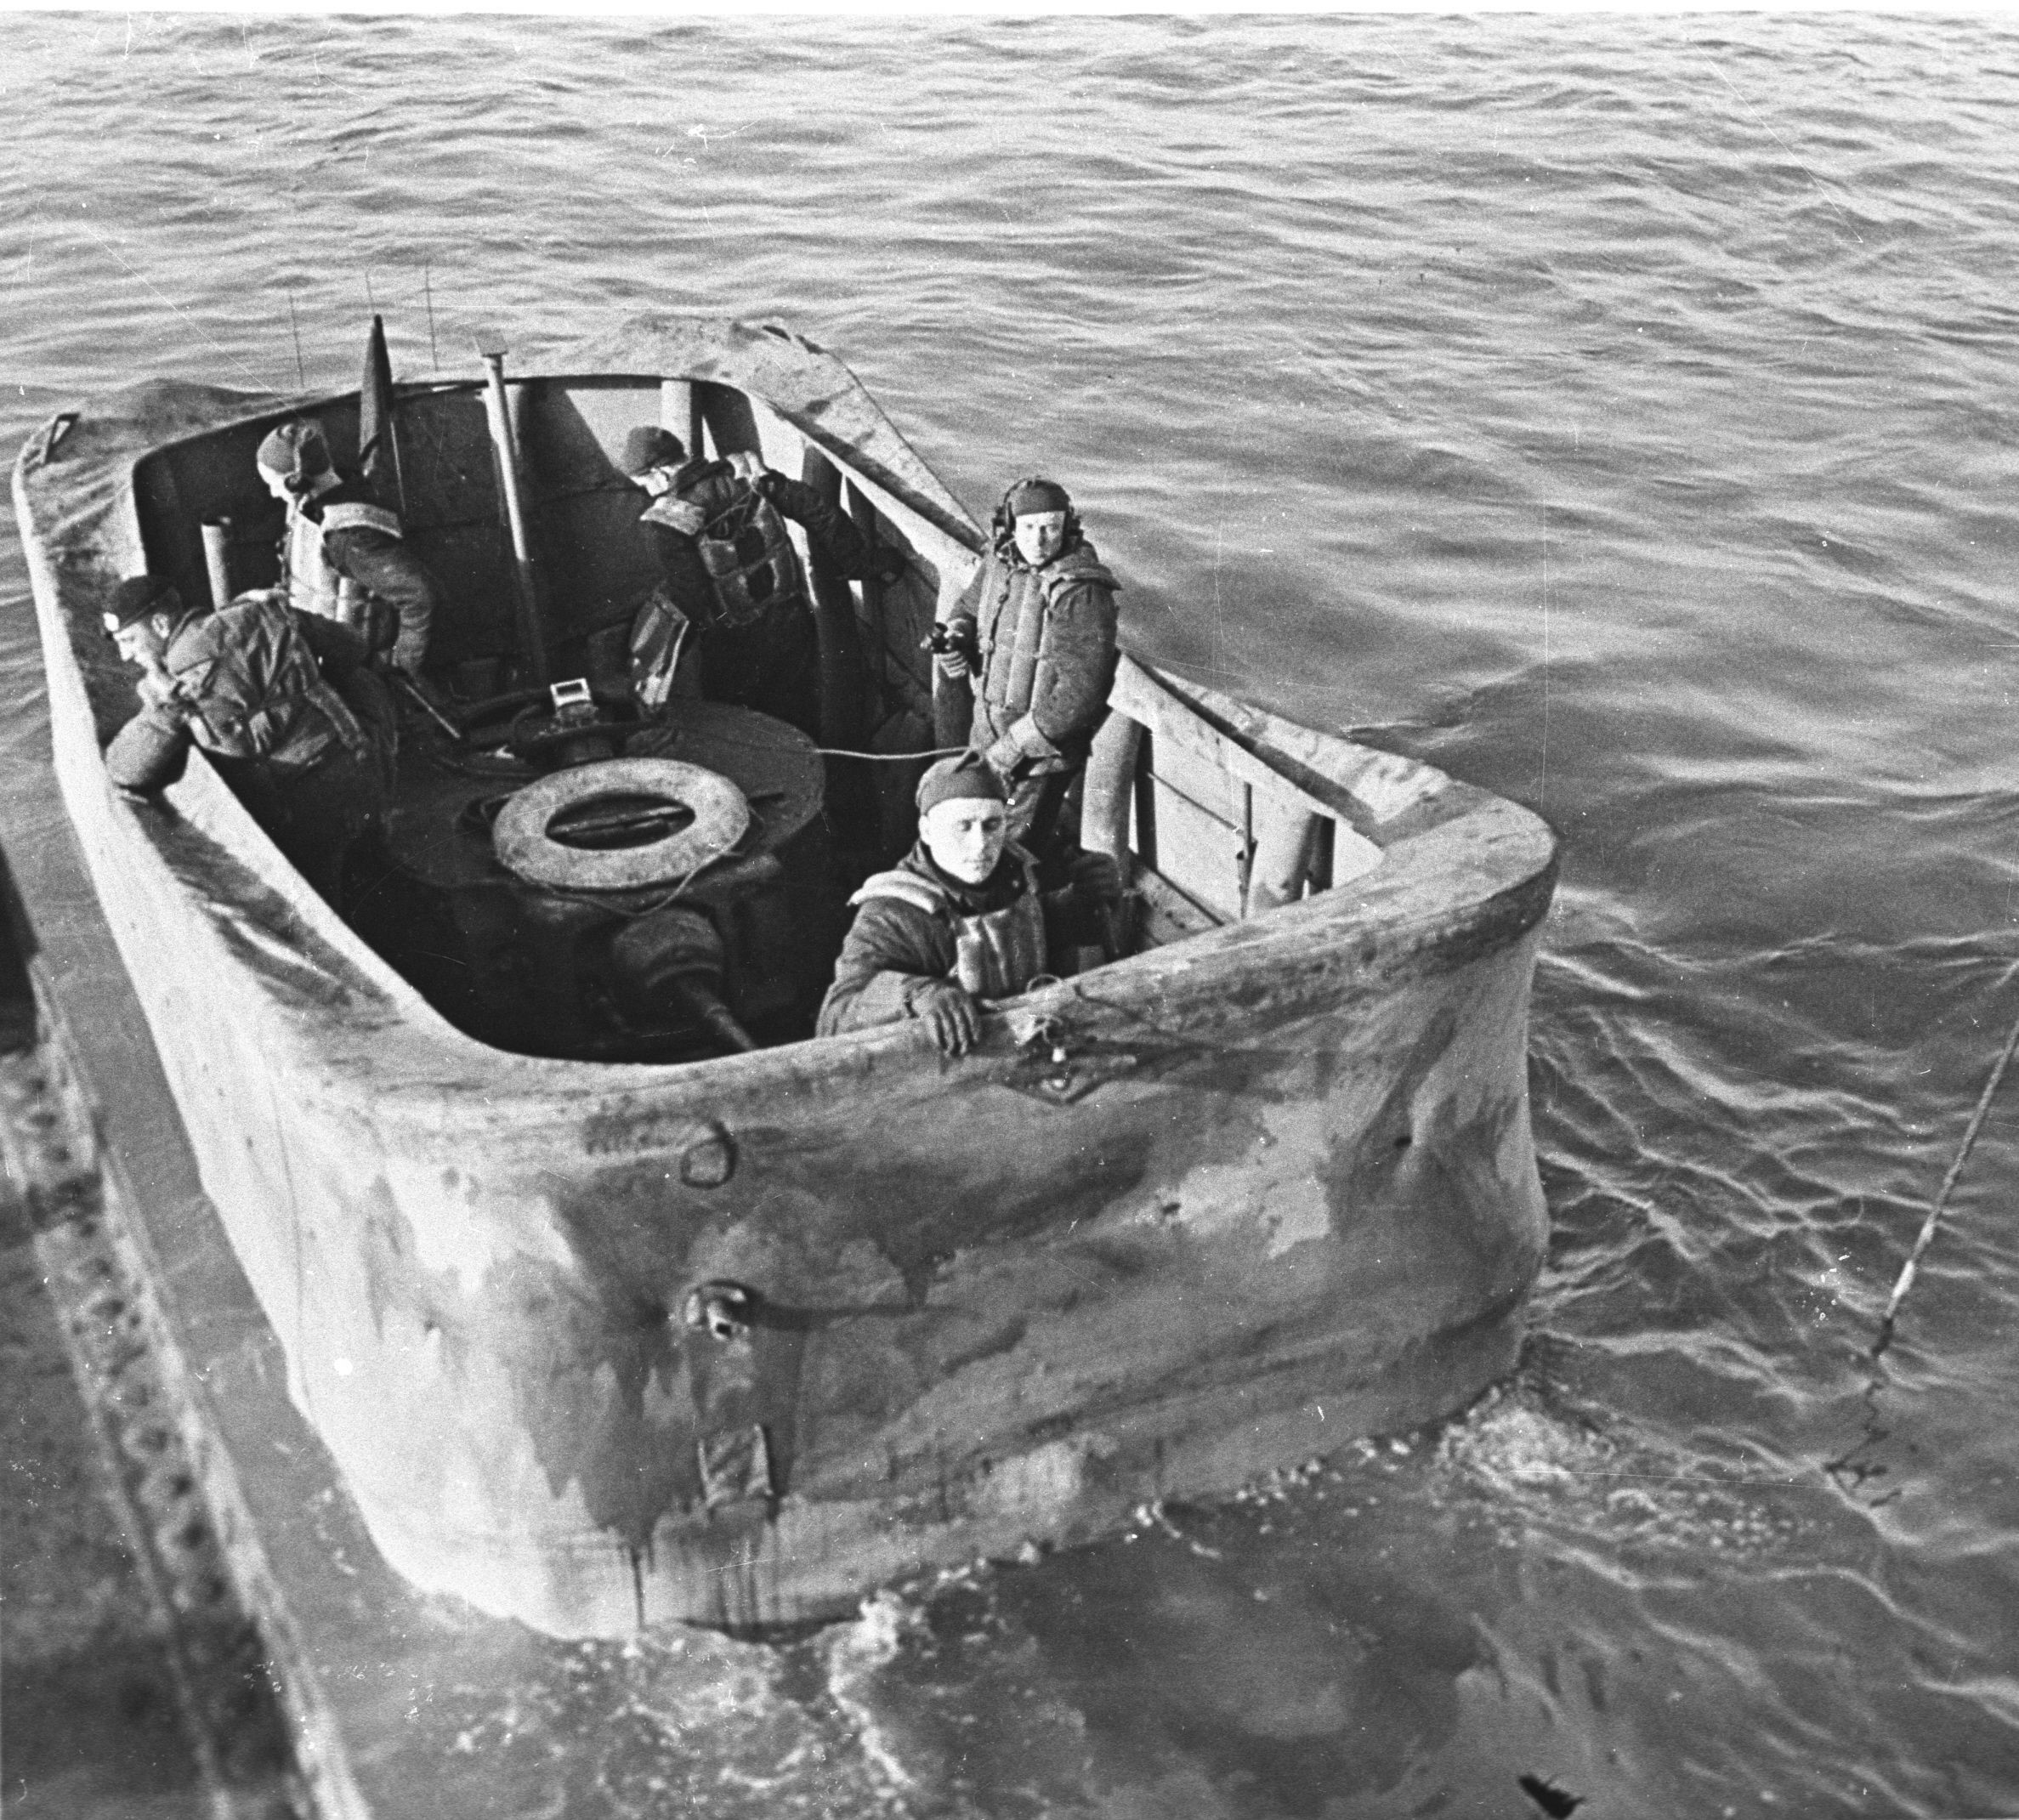 Image of Valentine Tank being launched from a landing craft, courtesy of The Tank Museum